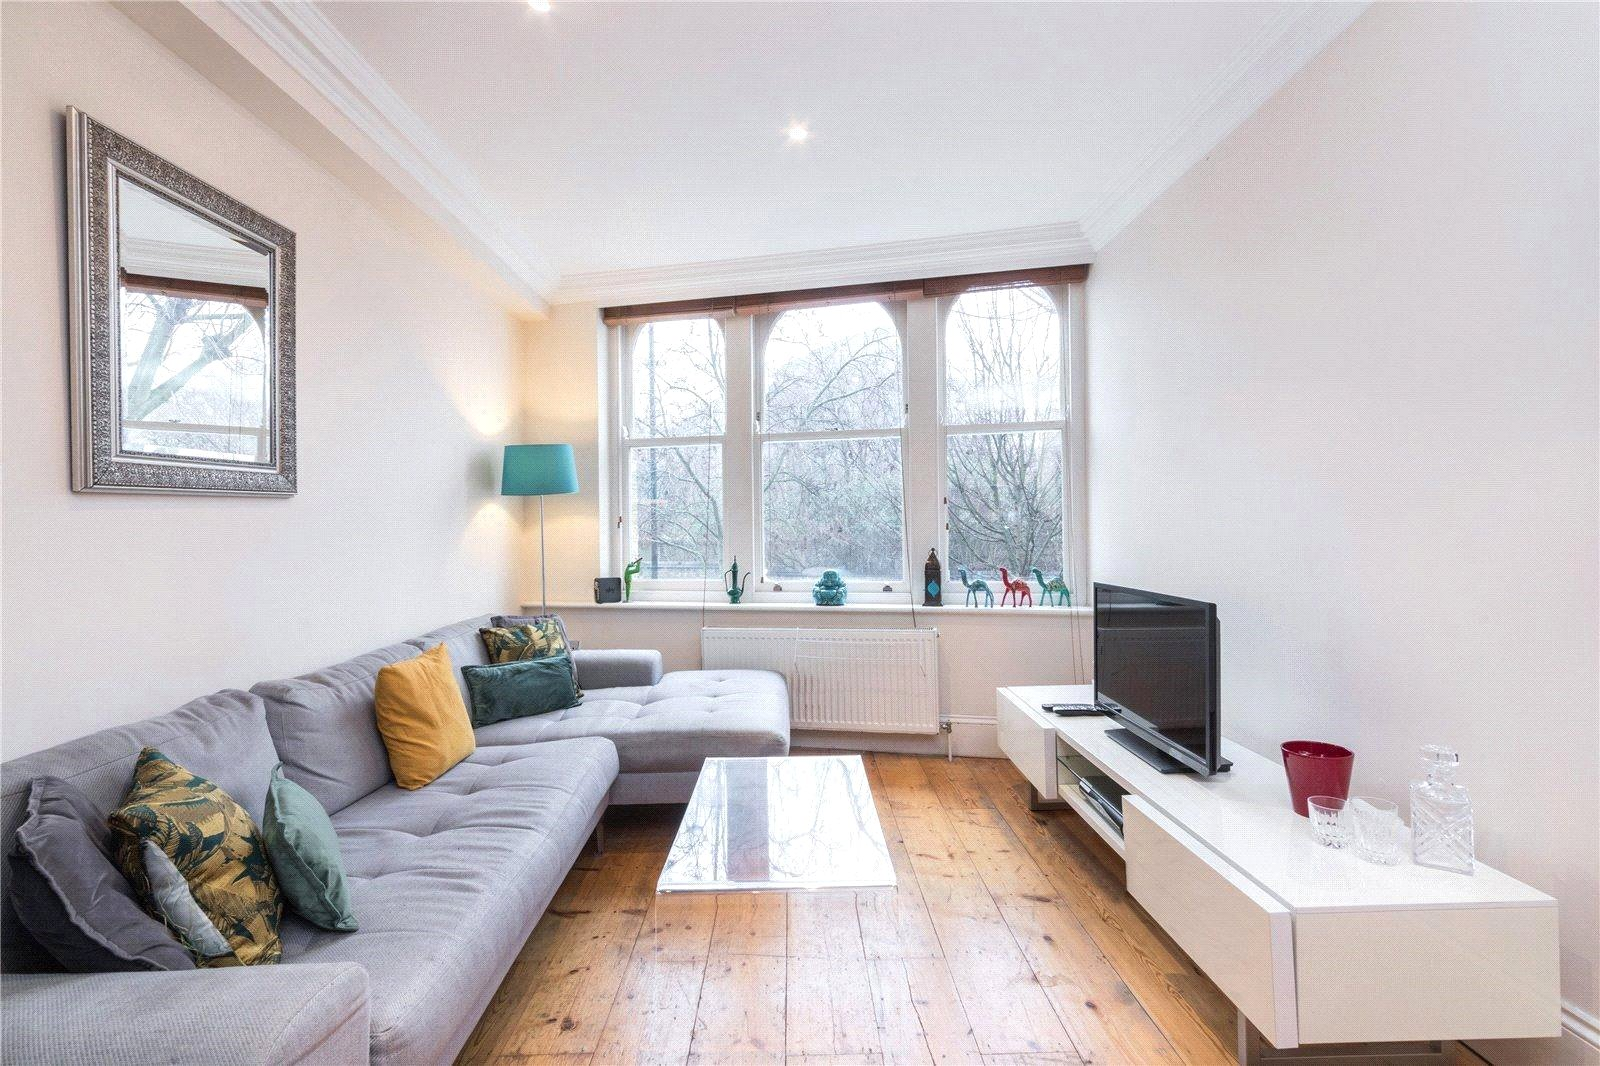 2 bed apartment to rent in Arsenal, N5 1LU 0